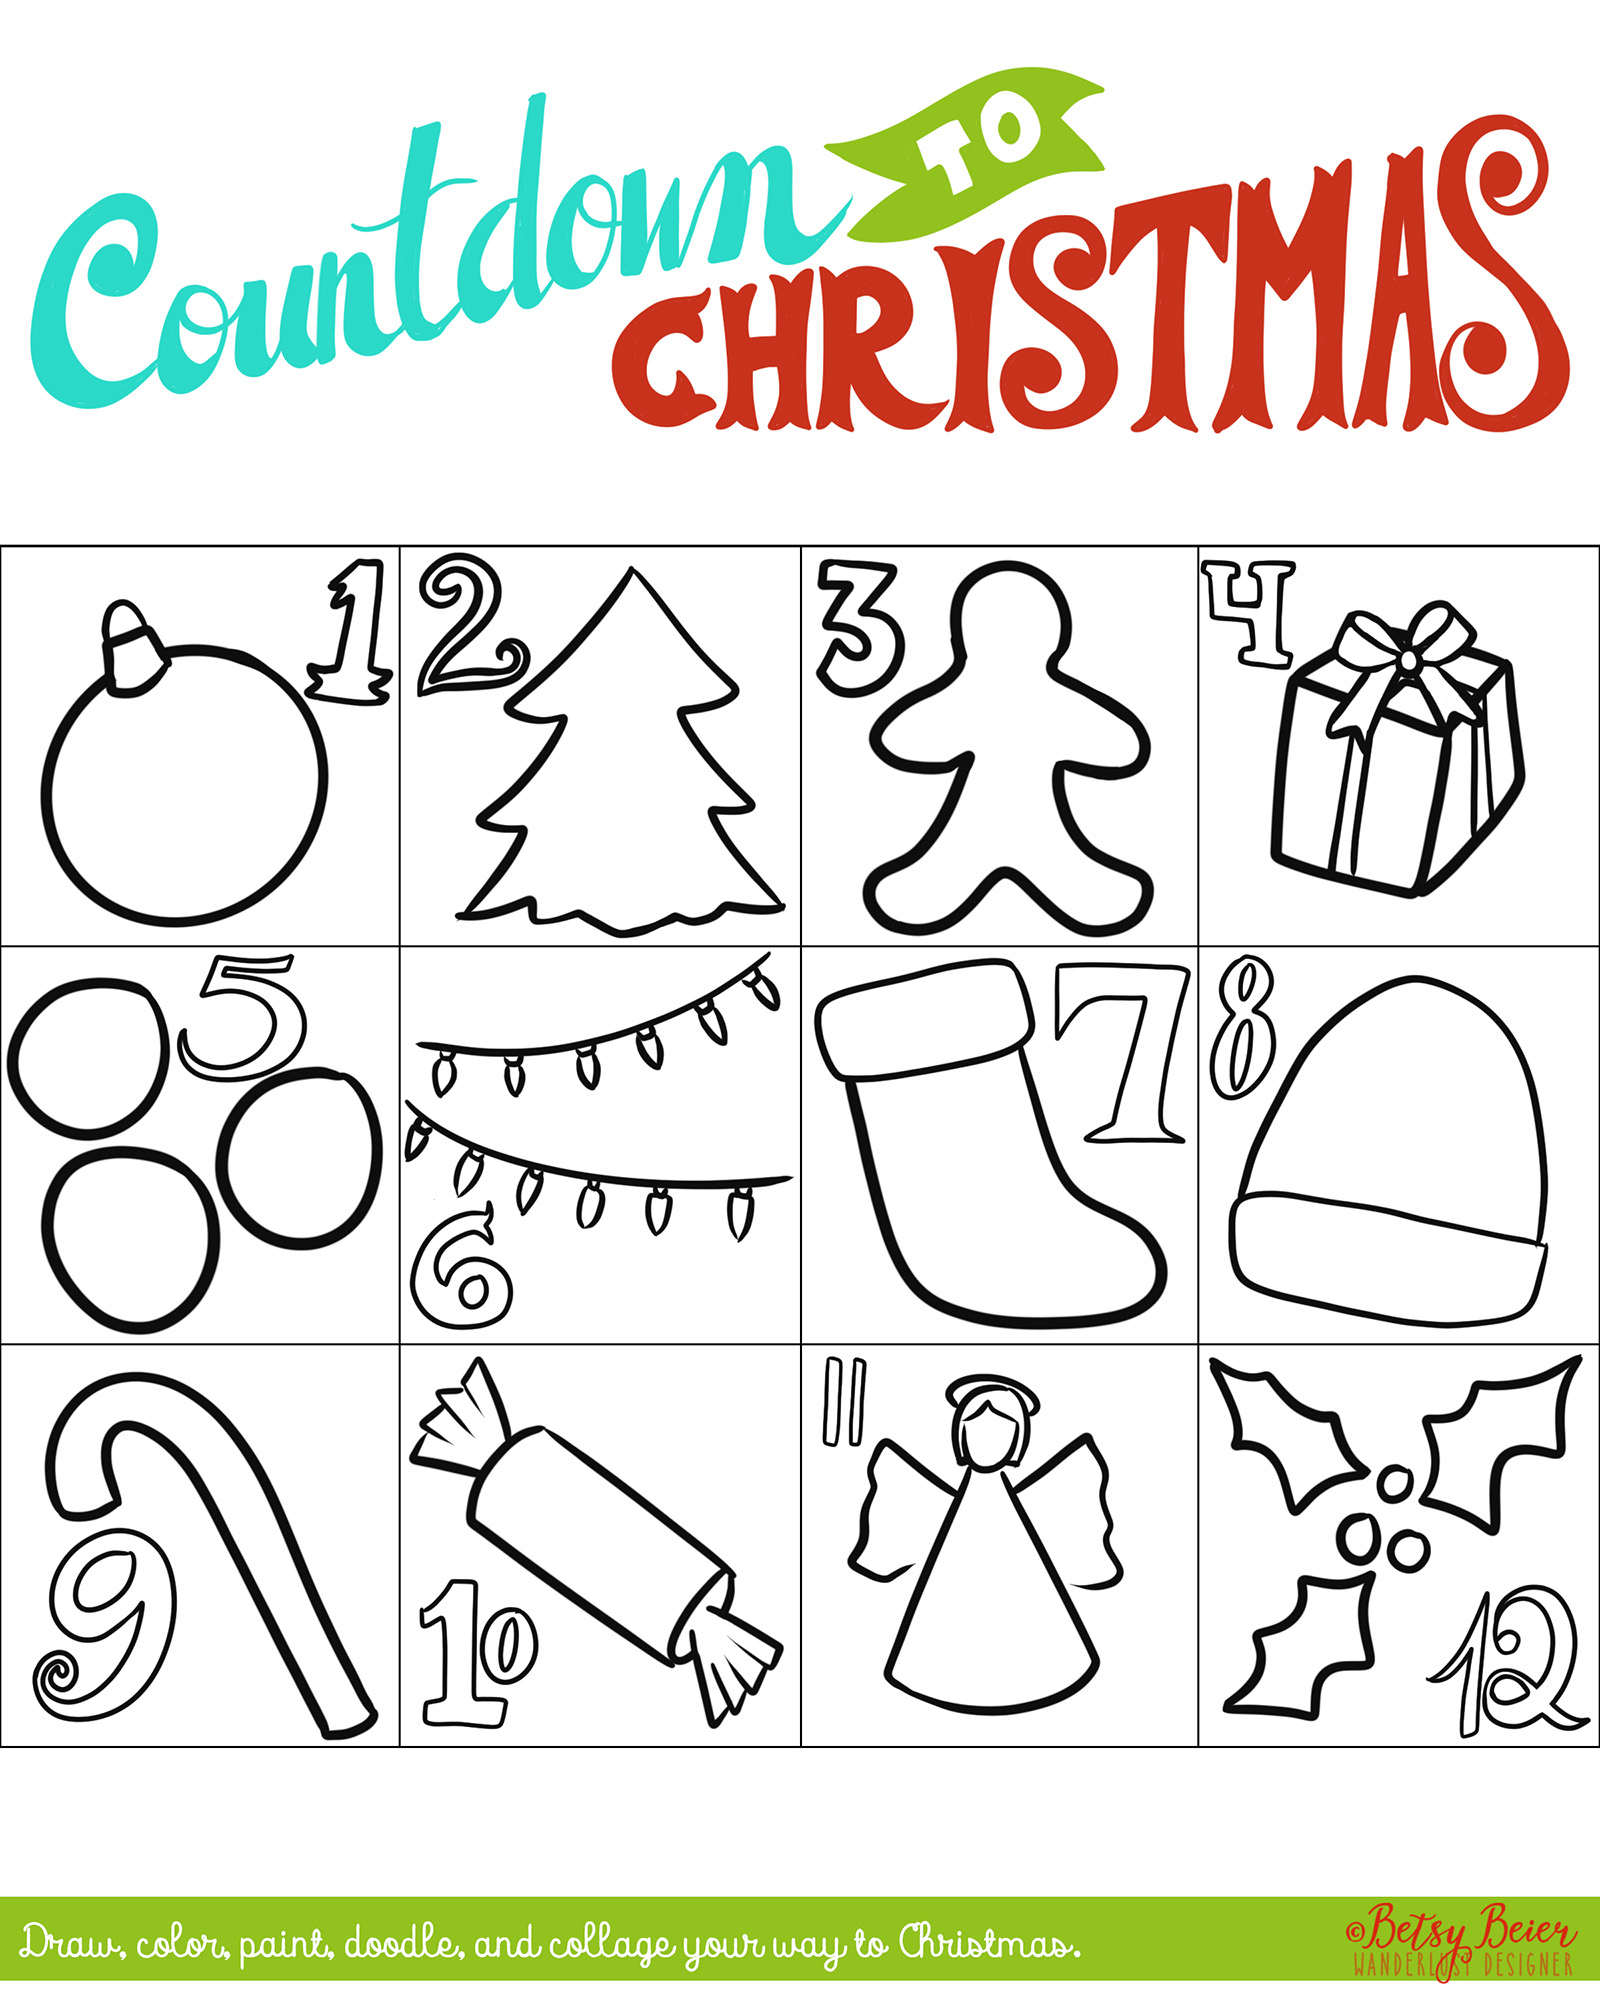 Free Printable Countdown to Christmas Art Project - Days 1-12 by Betsy Beier